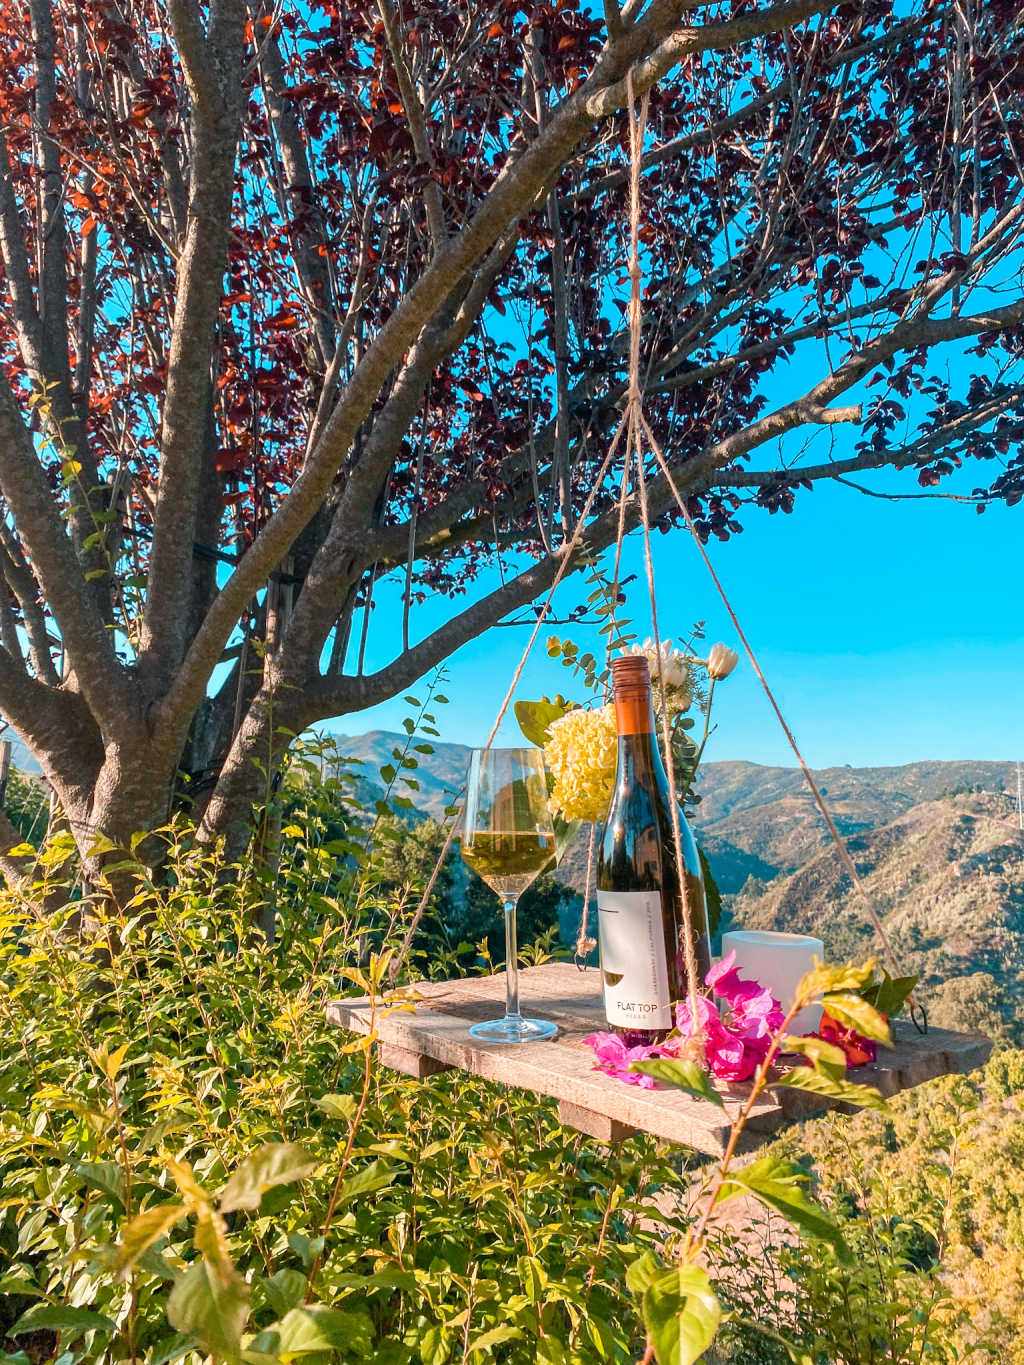 flat top chardonnay hanging from a swing on tree with mountains in the background | Poplolly co